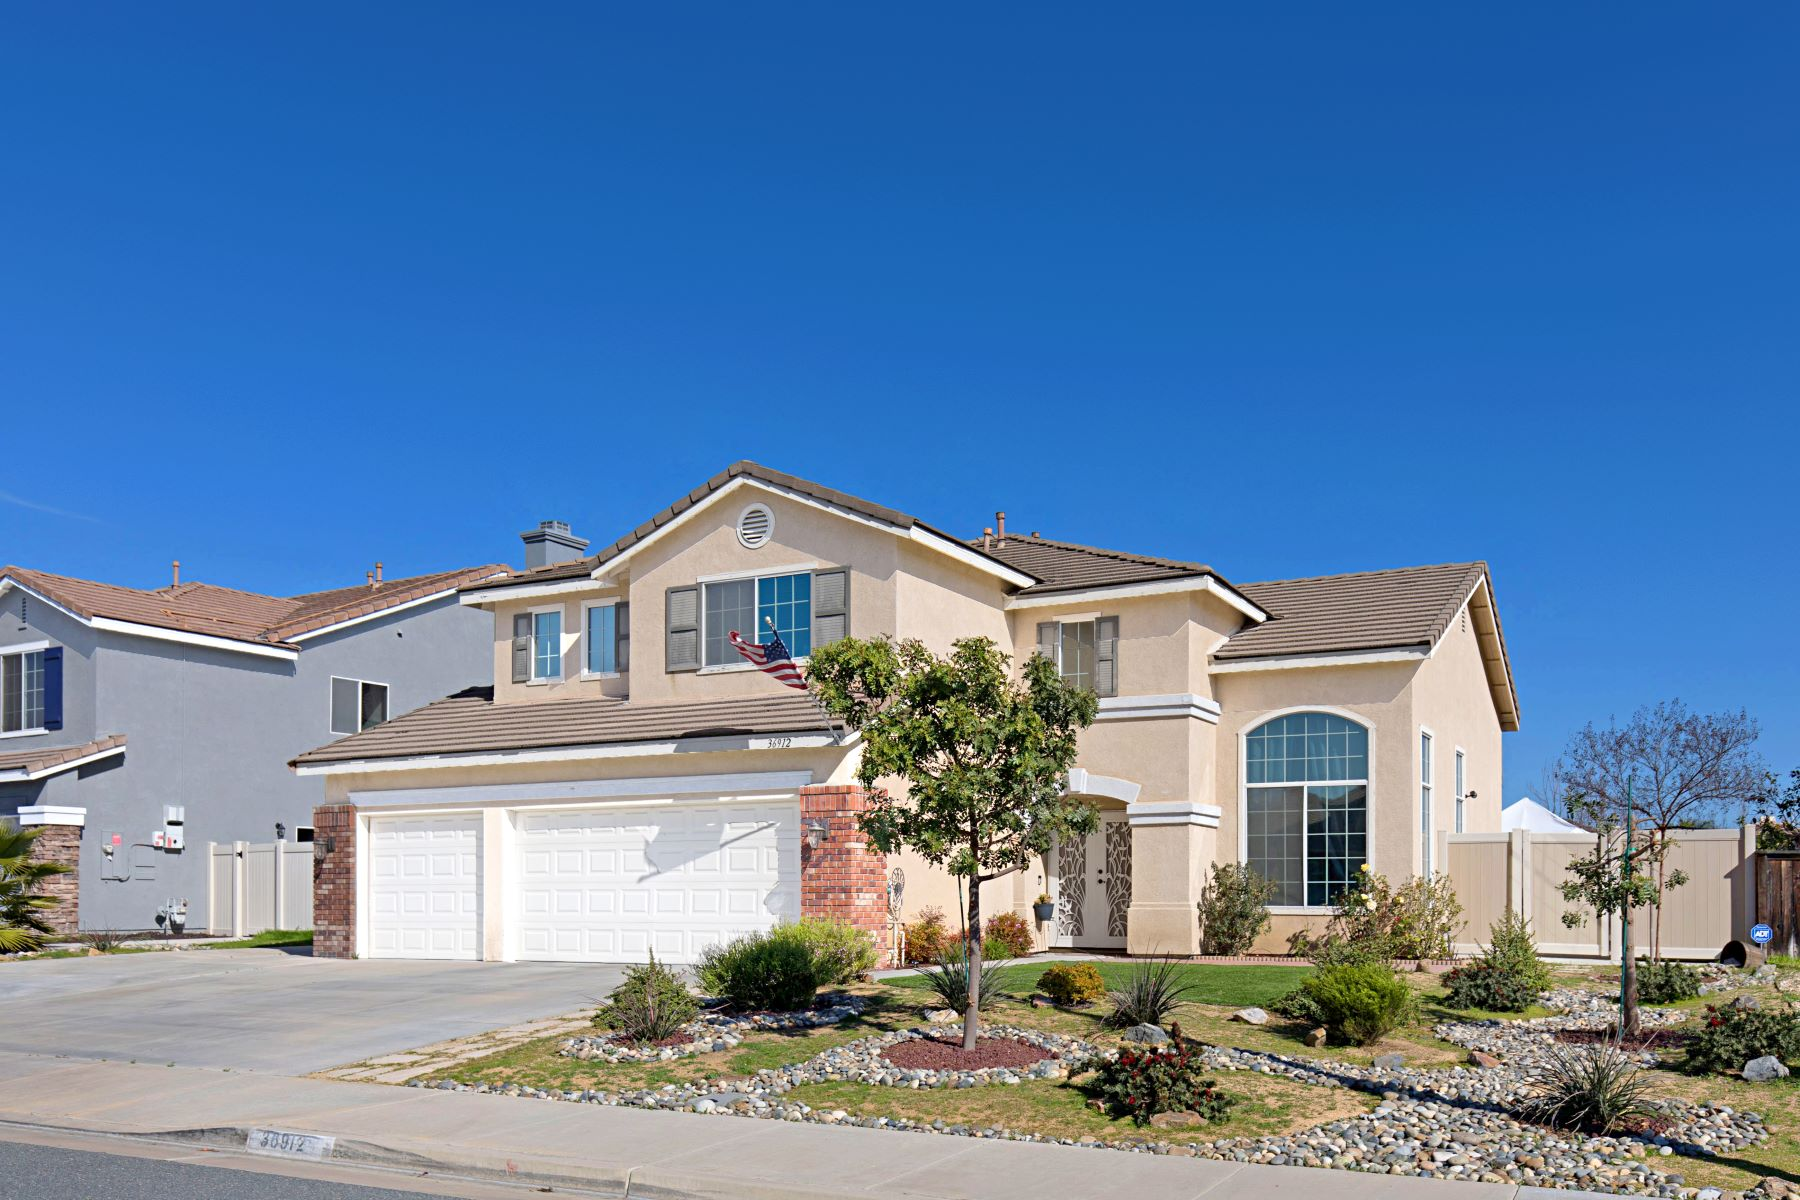 Single Family Homes for Active at 36912 Ranch House Street Murrieta, California 92563 United States